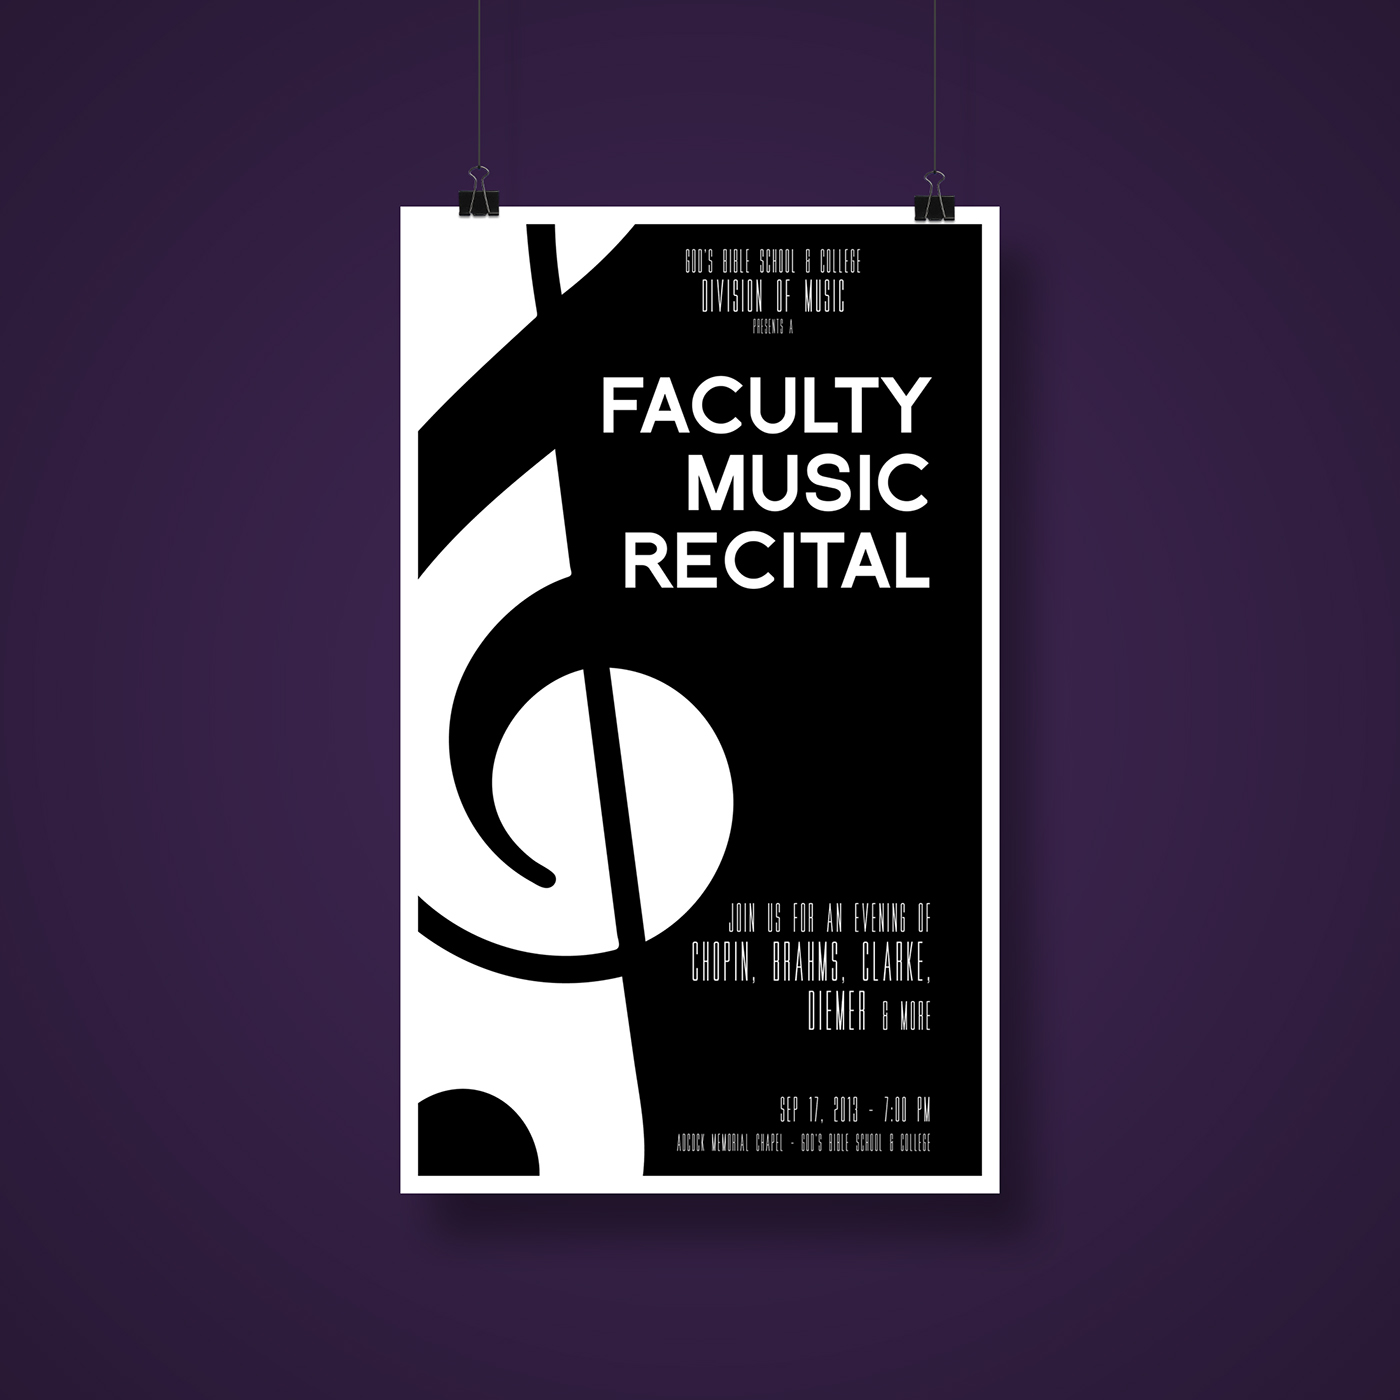 Below Is A Collection Of Concert And Recital Posters I Have Created Over The Past Few Years